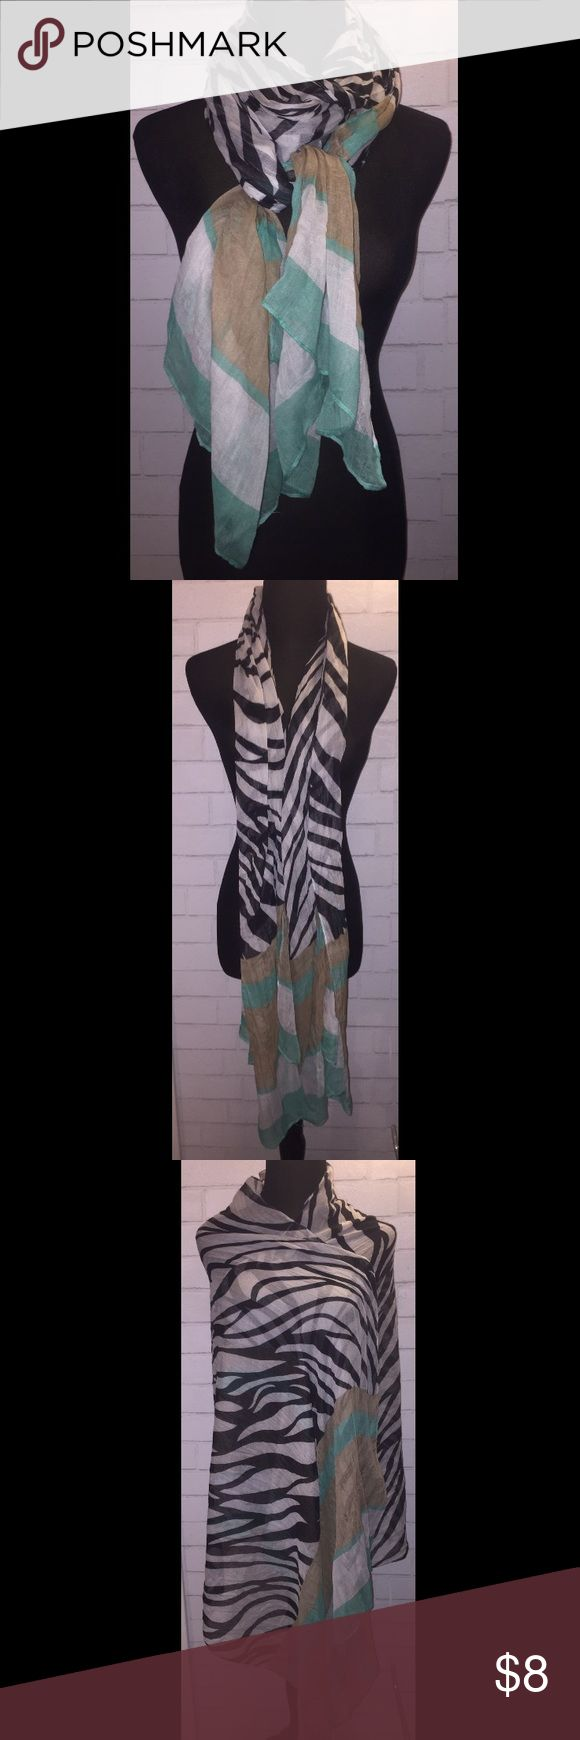 """Zebra, Teal, & Tan Mesh Scarf Zebra Print, Teal, & Tan Mesh Scarf  **PLEASE READ CAREFULLY** - Mesh Material Is Very Light & Delicate - Scarf Has Some Pulls Due to Delicate Material - Can't Notice These Minor Pulls Unless Close Up  - Pre-owned, Great Condition - From a Smoke-Free & Pet- Free Home - Mesh Material - 34"""" Width - 80"""" Length Accessories Scarves & Wraps"""